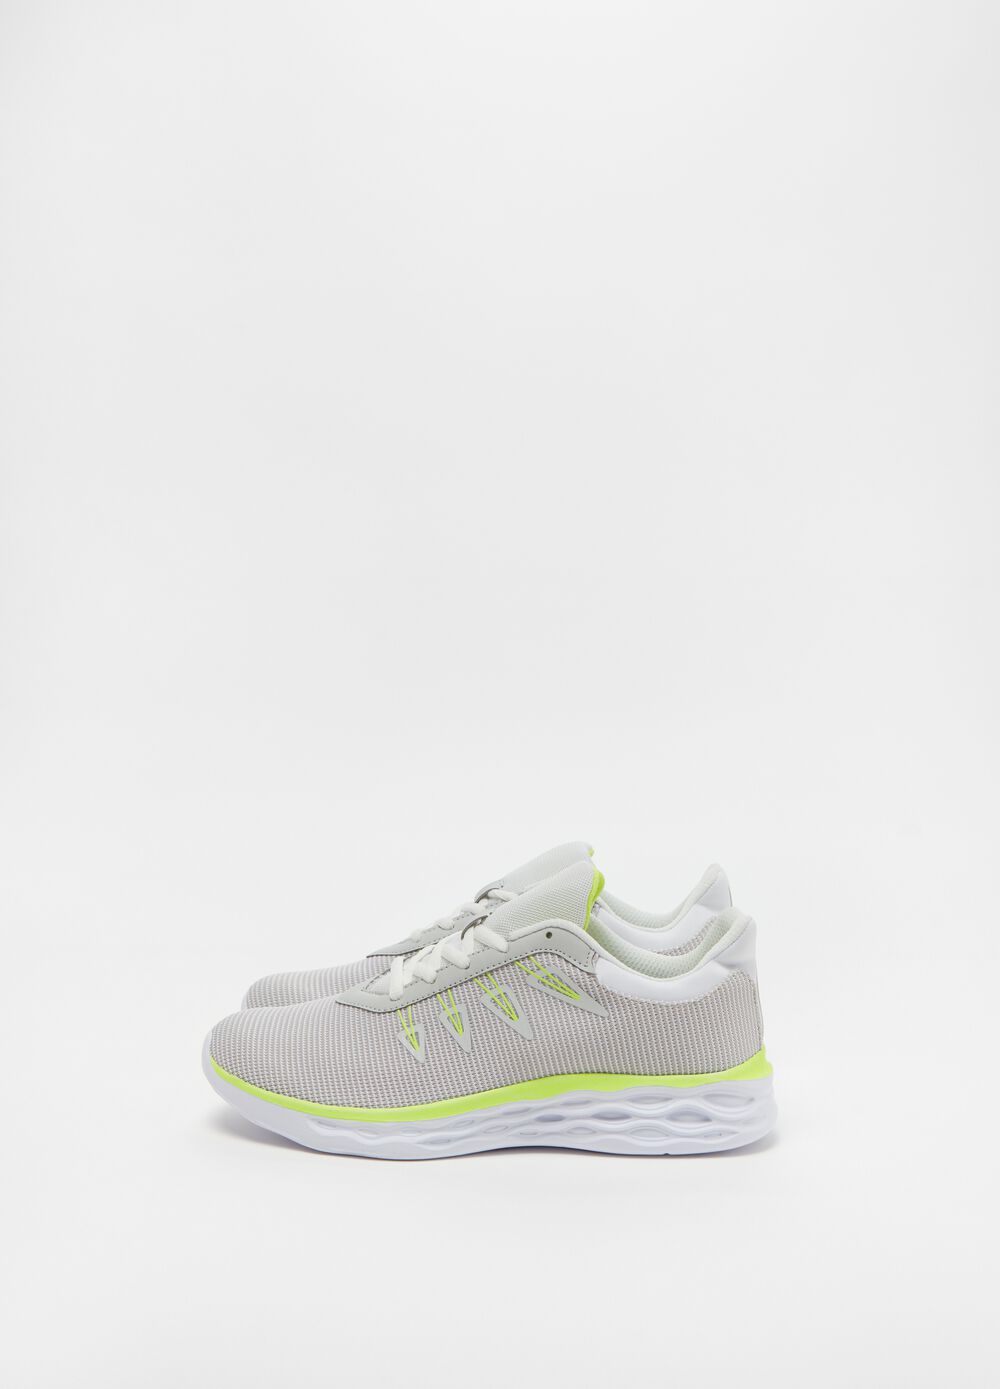 Sneakers with fluorescent details